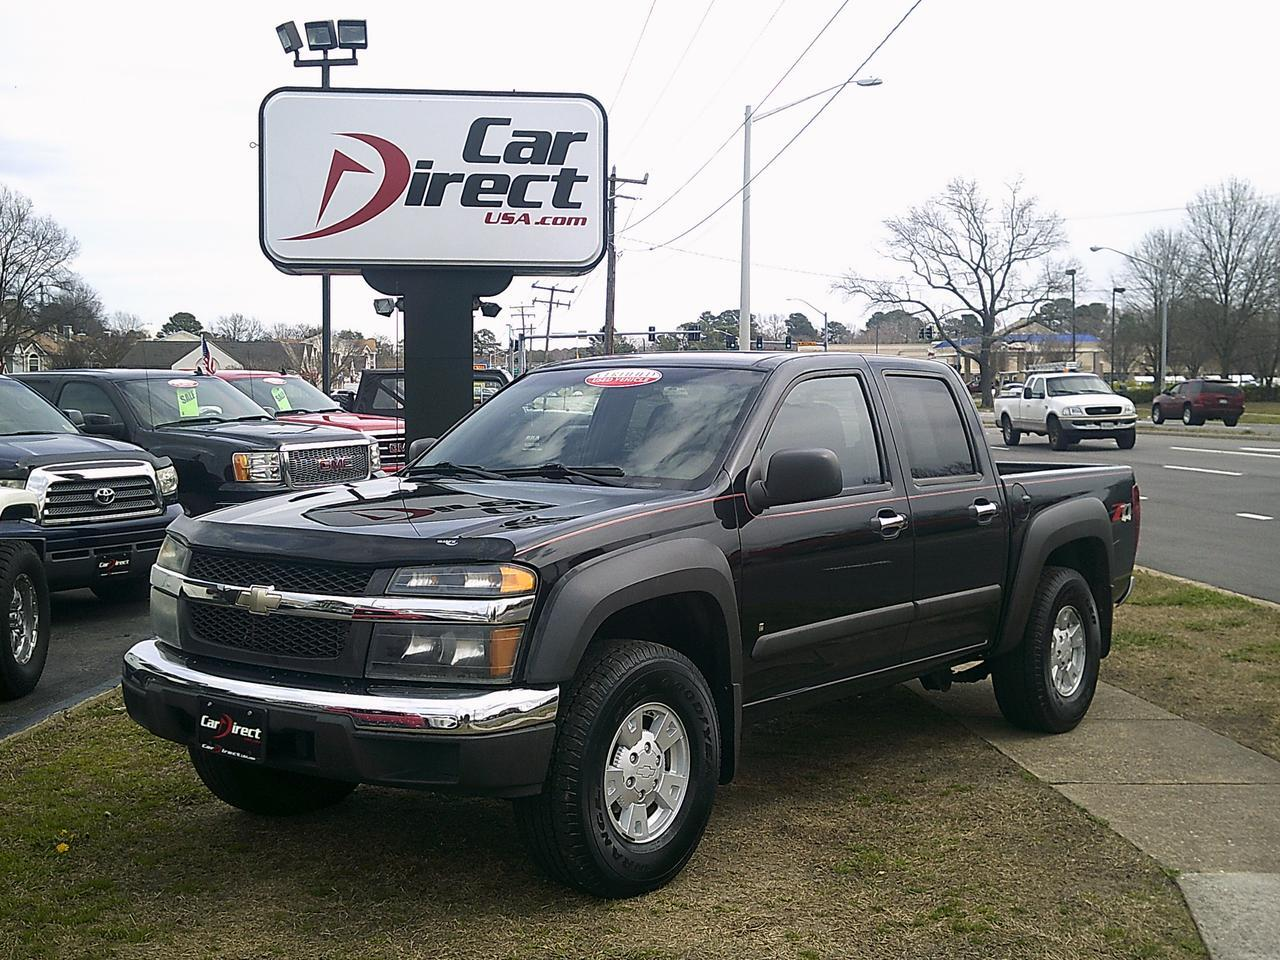 2007 chevrolet colorado crew cab lt z71 4x4 autocheck. Black Bedroom Furniture Sets. Home Design Ideas